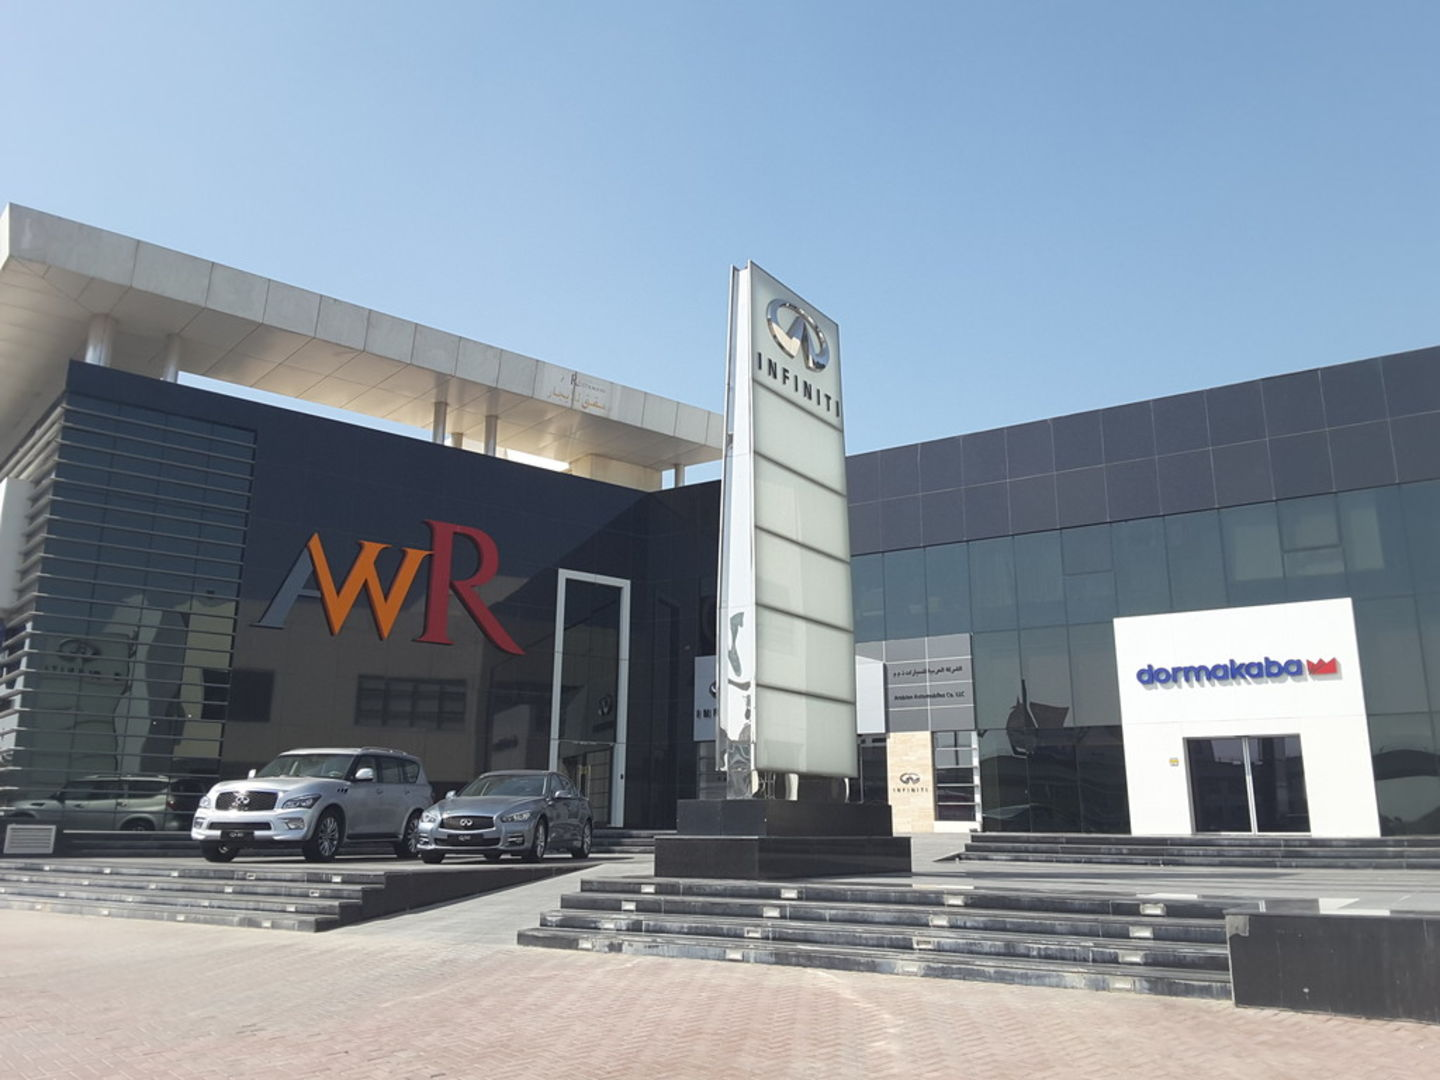 HiDubai-business-arabian-automobiles-infinity-pre-owned-showroom-transport-vehicle-services-used-car-dealers-al-safa-2-dubai